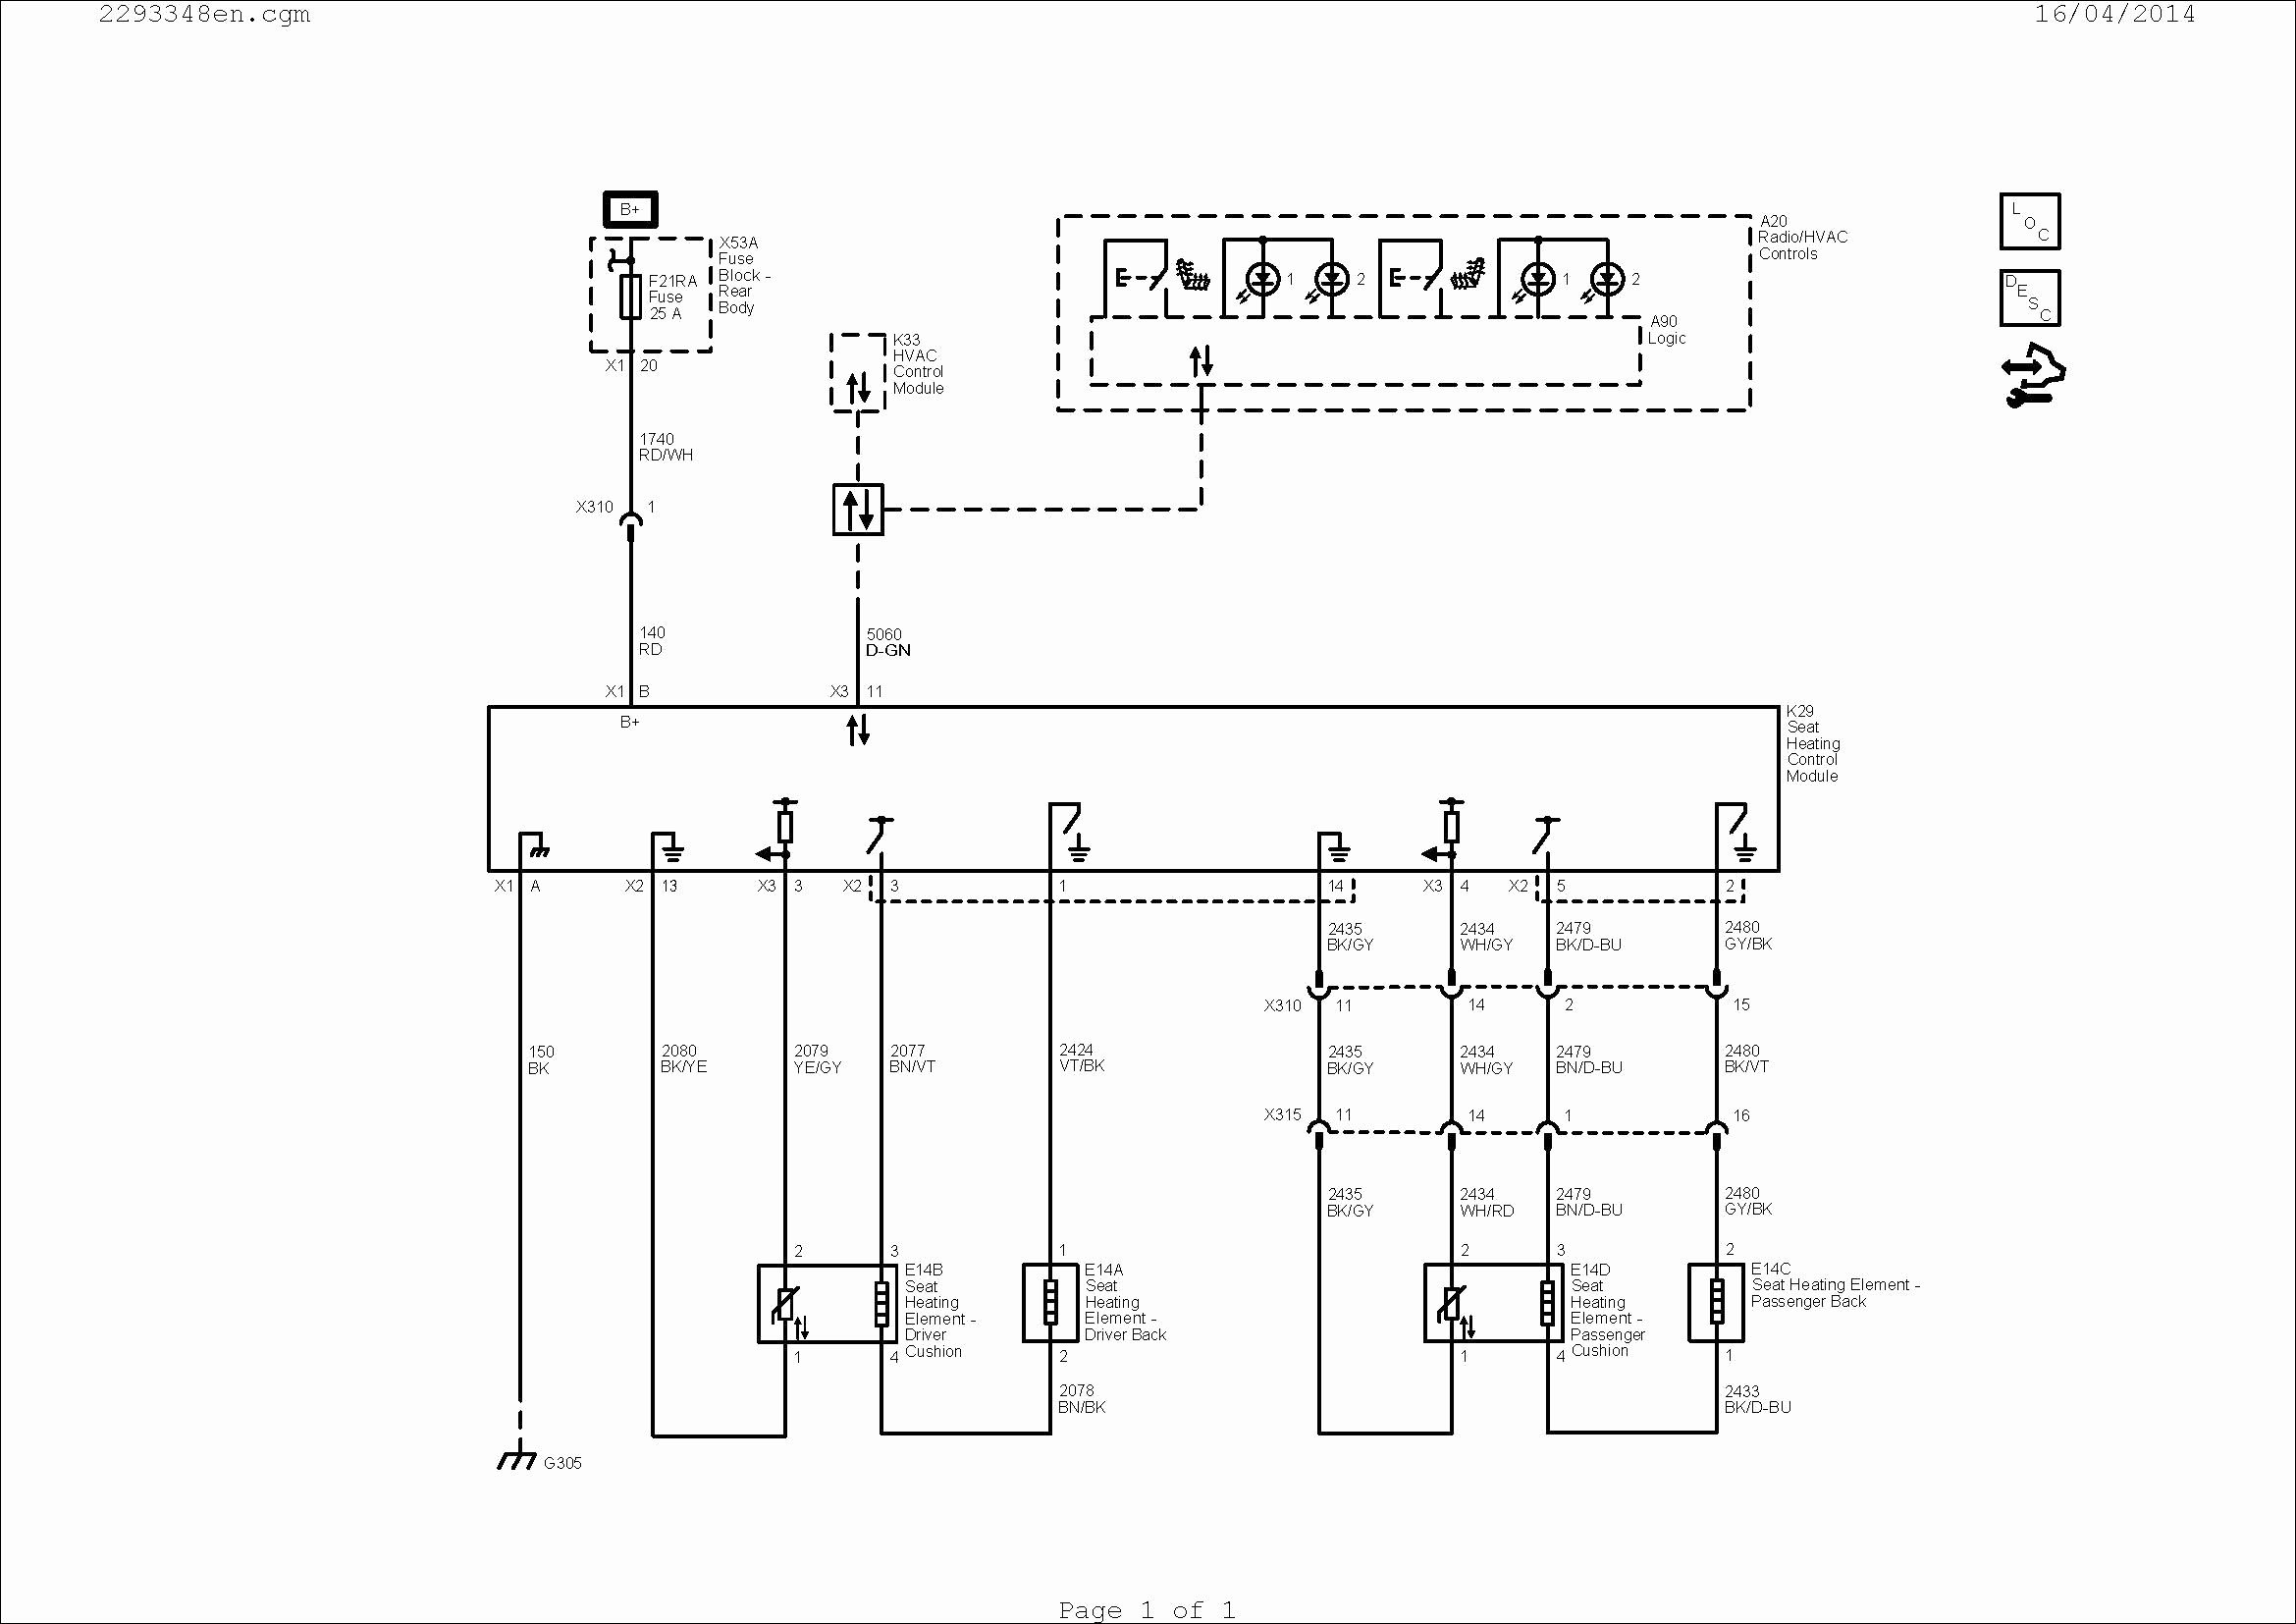 Contactor Wiring Diagram Book | Wiring Diagram - Toyota 86120 Wiring Diagram